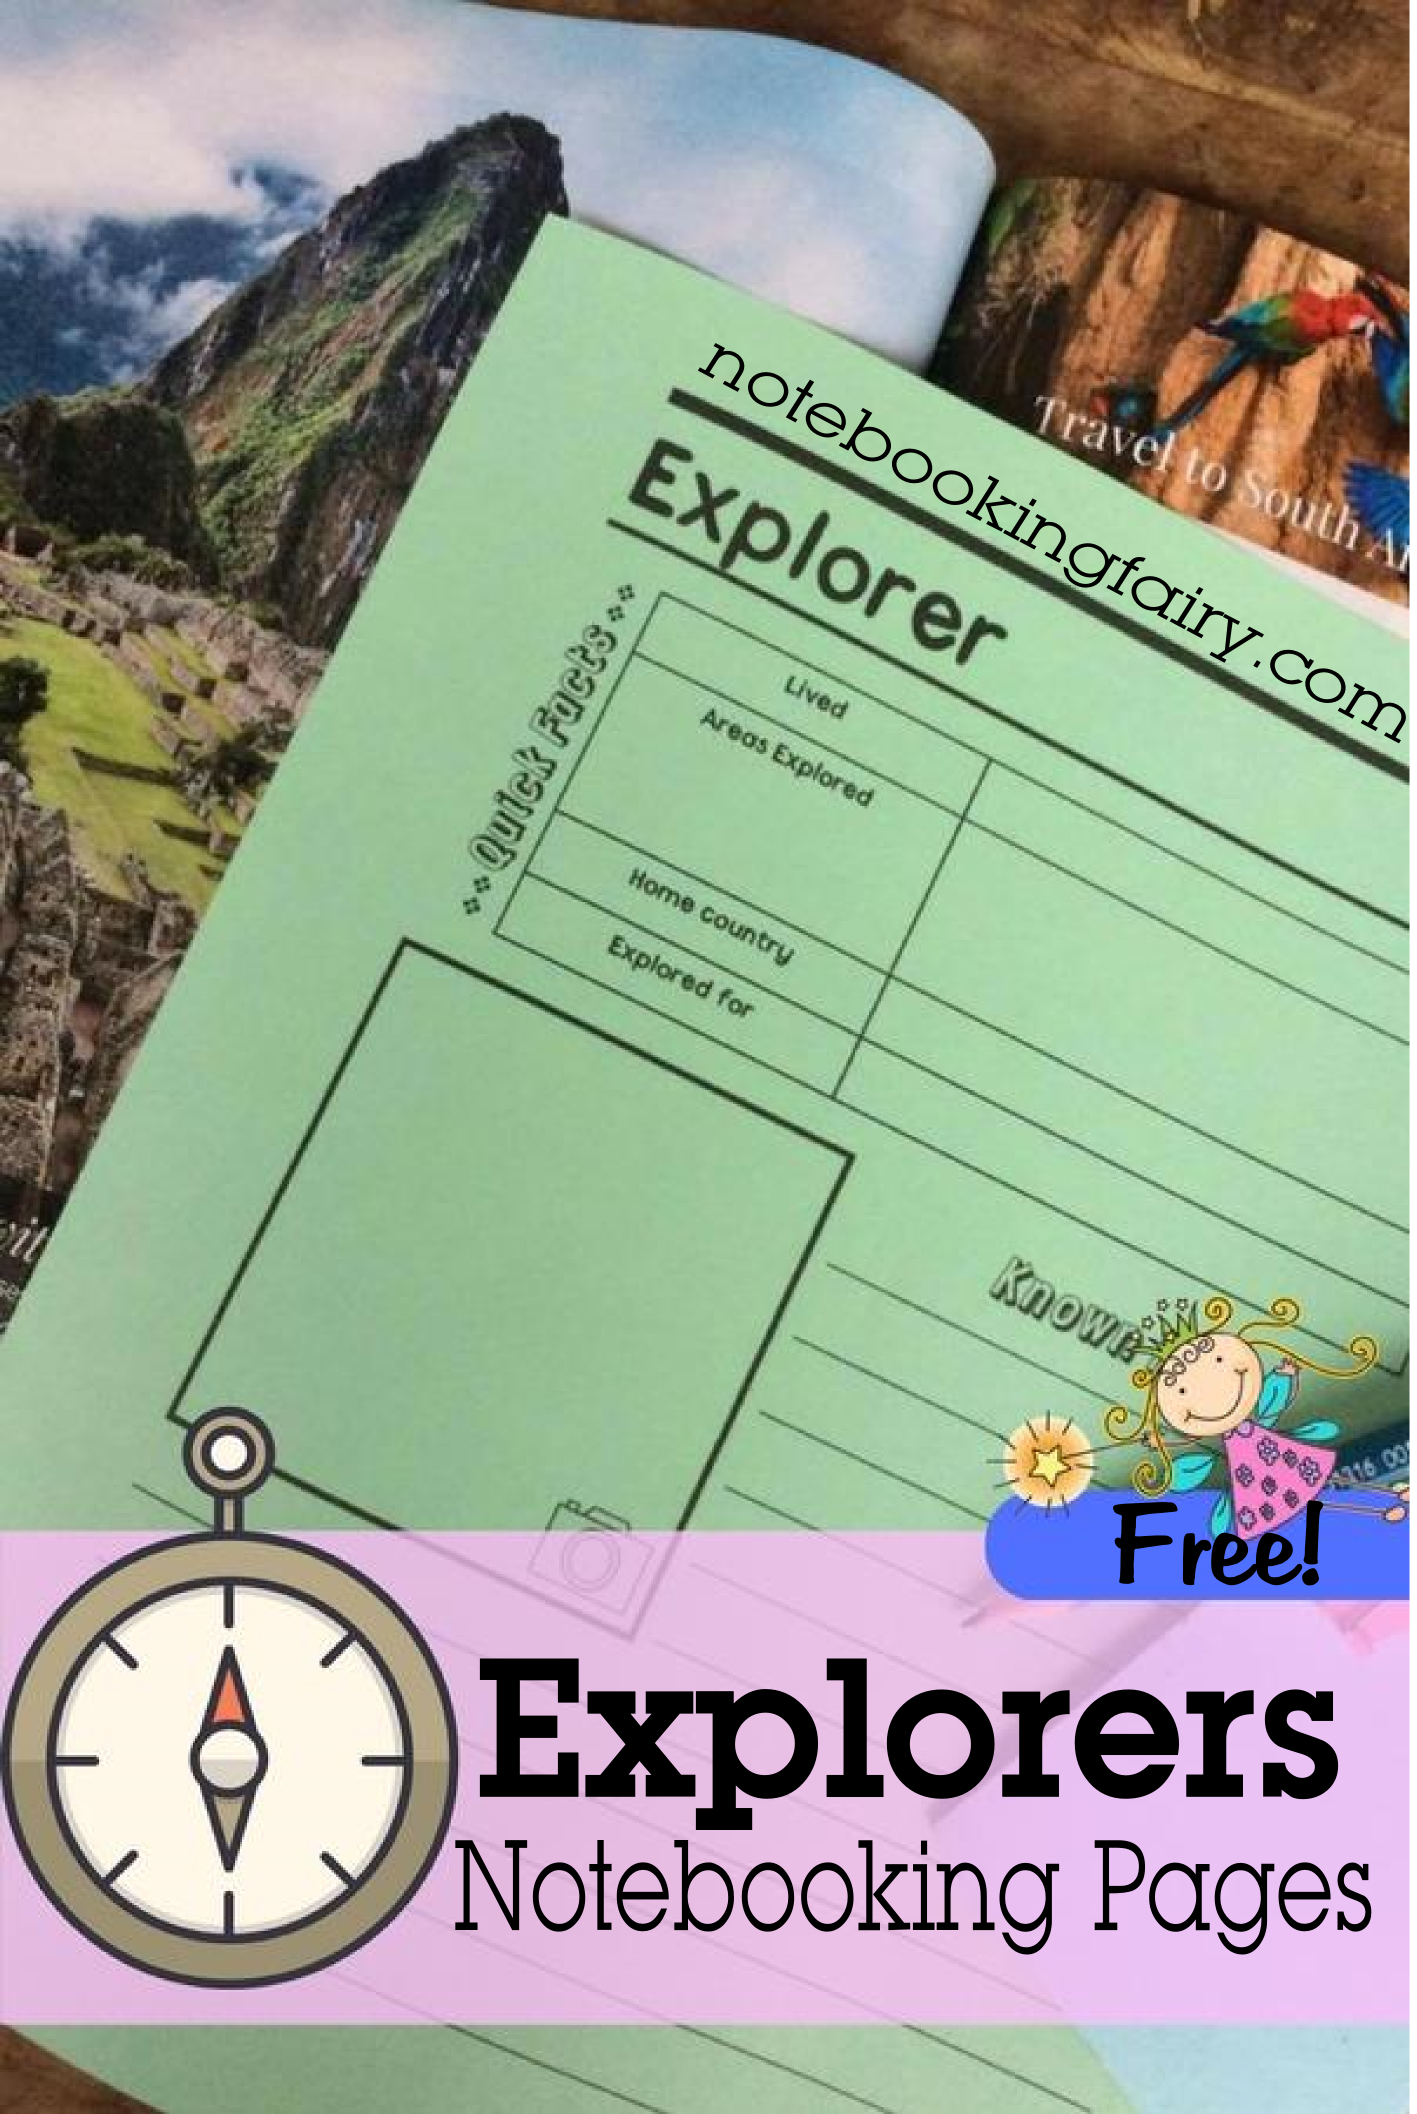 Explorers Notebooking Pages Free From The Notebooking